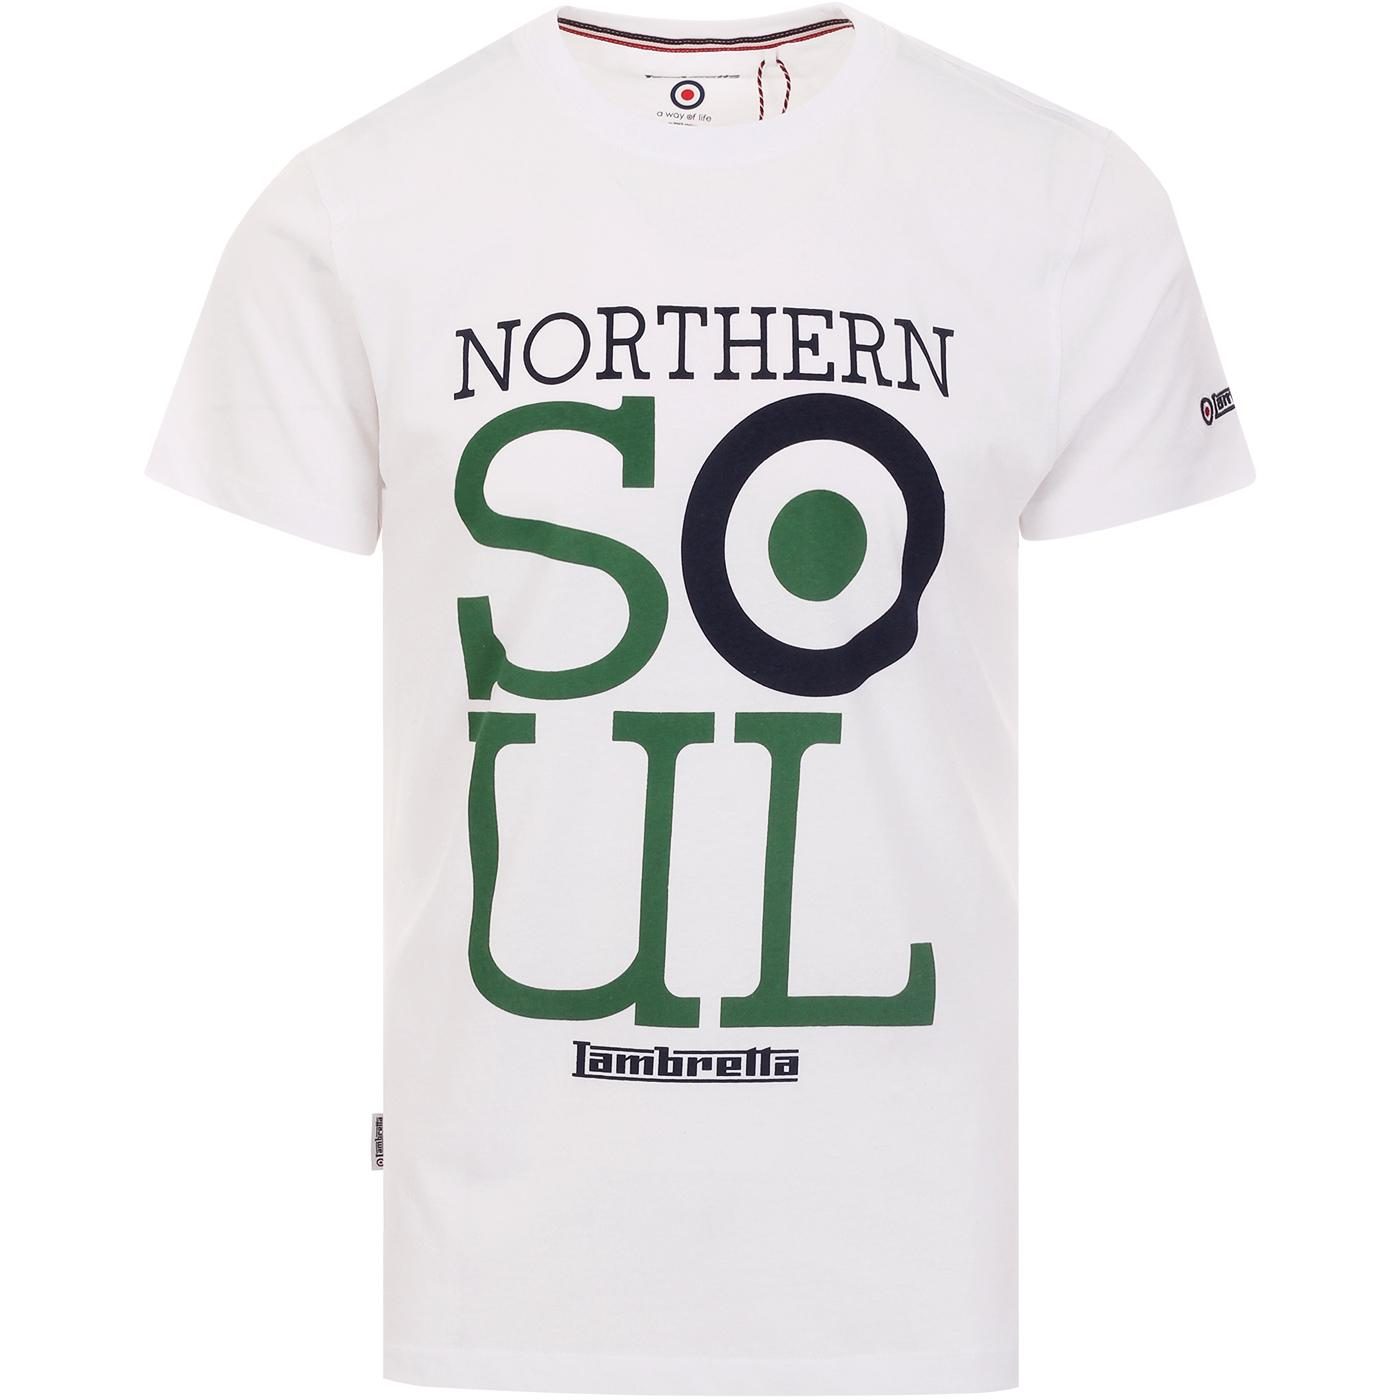 LAMBRETTA Northern Soul Logo Mod T-Shirt WHITE